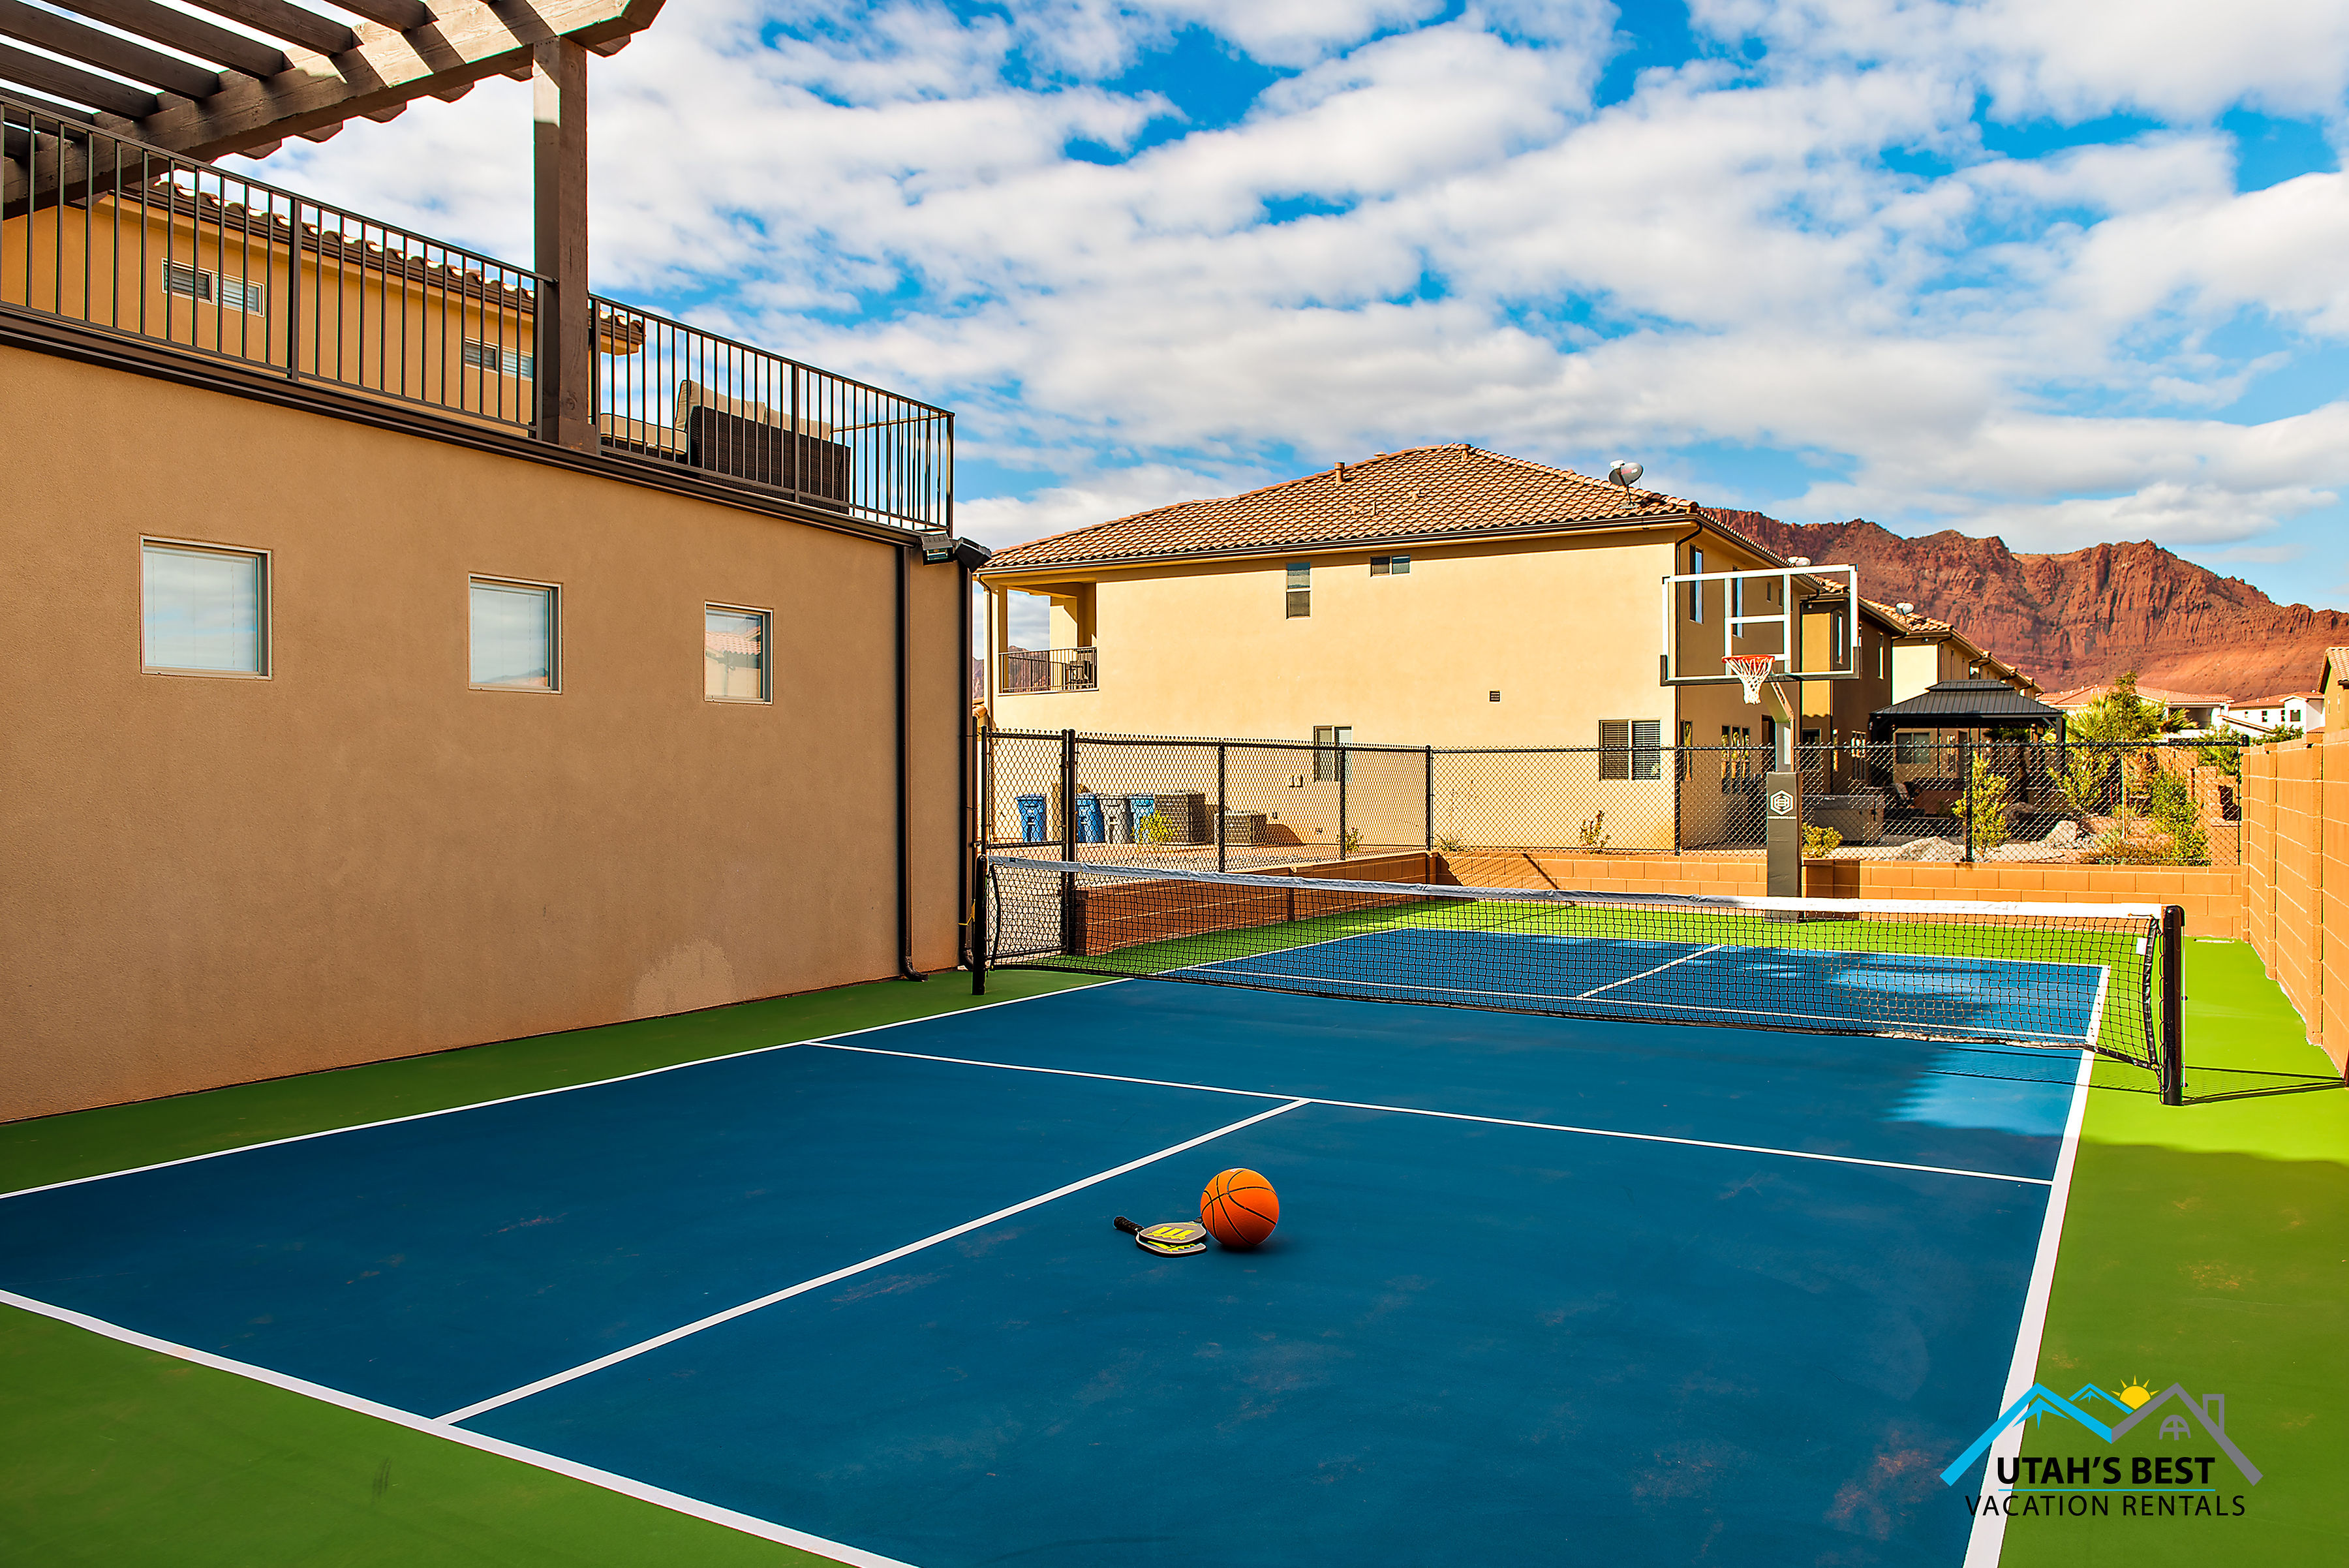 Vacation Home #98 at Paradise Village at Zion near Sand Hollow State Park - Utah's Best Vacation Rentals